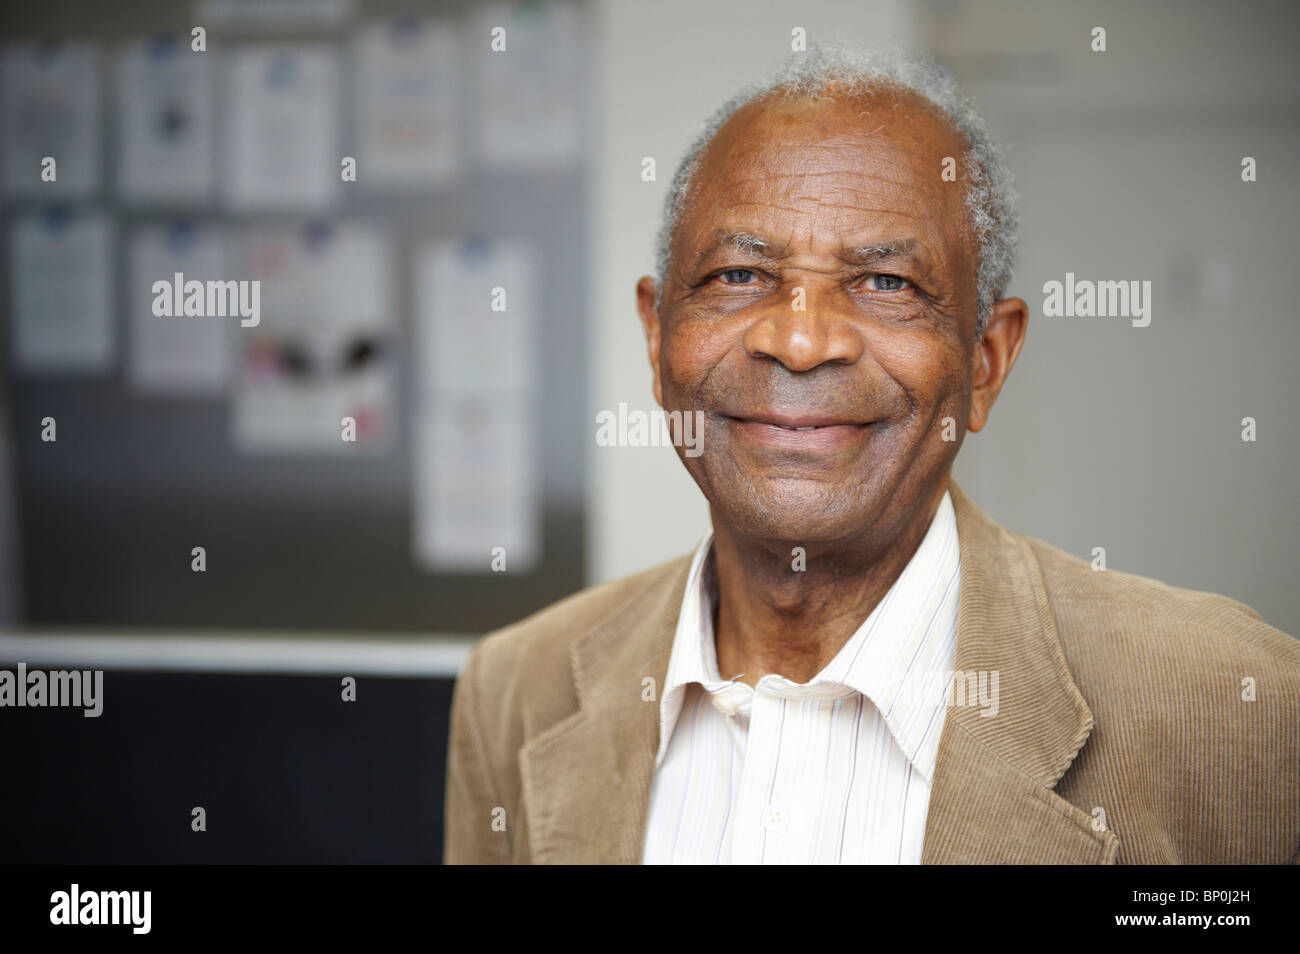 70 year old black man